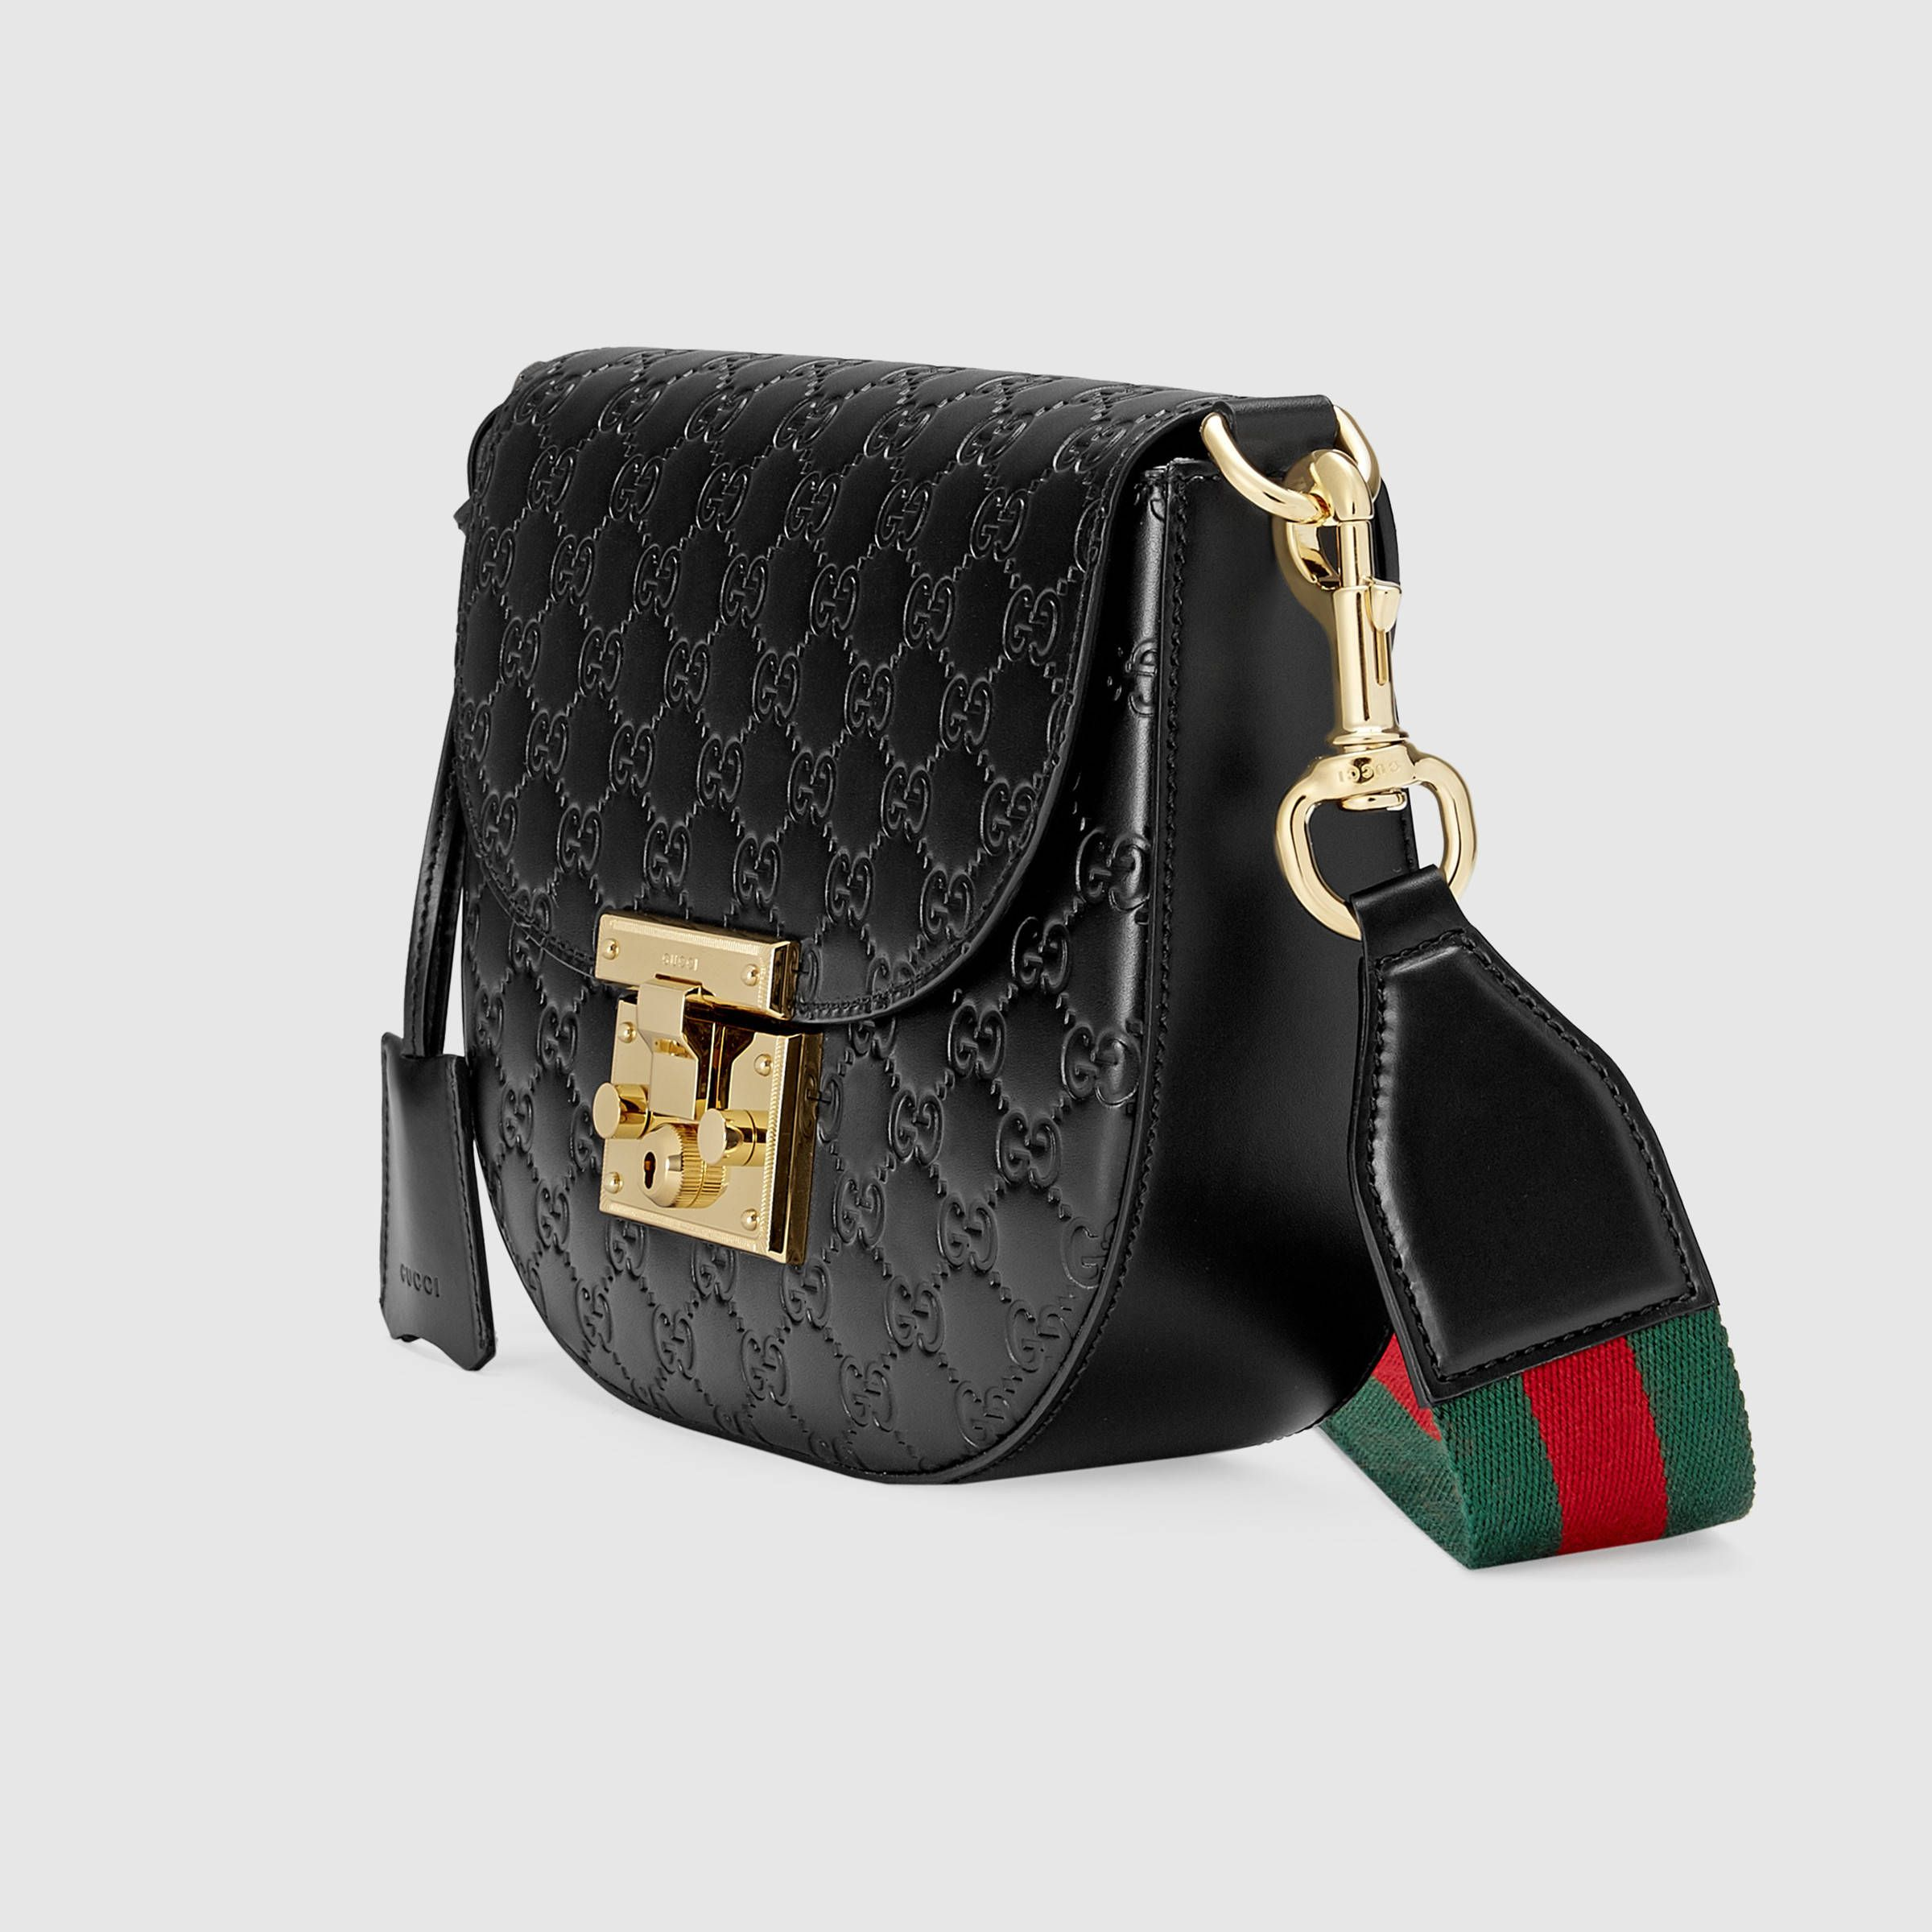 a6d7a9c48ff8 Gucci Padlock Gucci Signature leather shoulder bag Detail 2